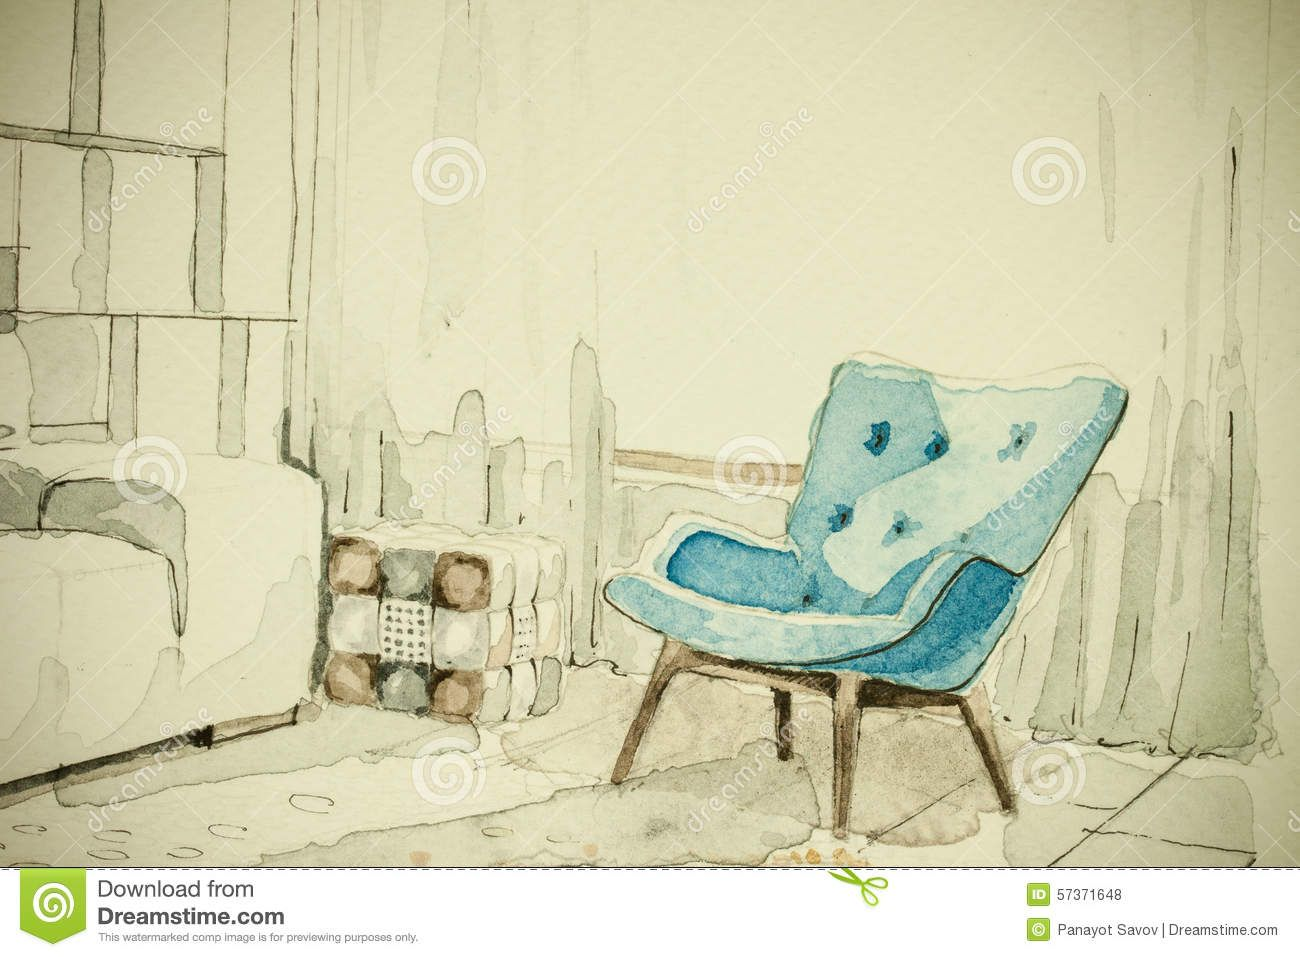 Furniture Sketches Watercolor Aquarelle Ink Freehand Sketch Perspective Architectural